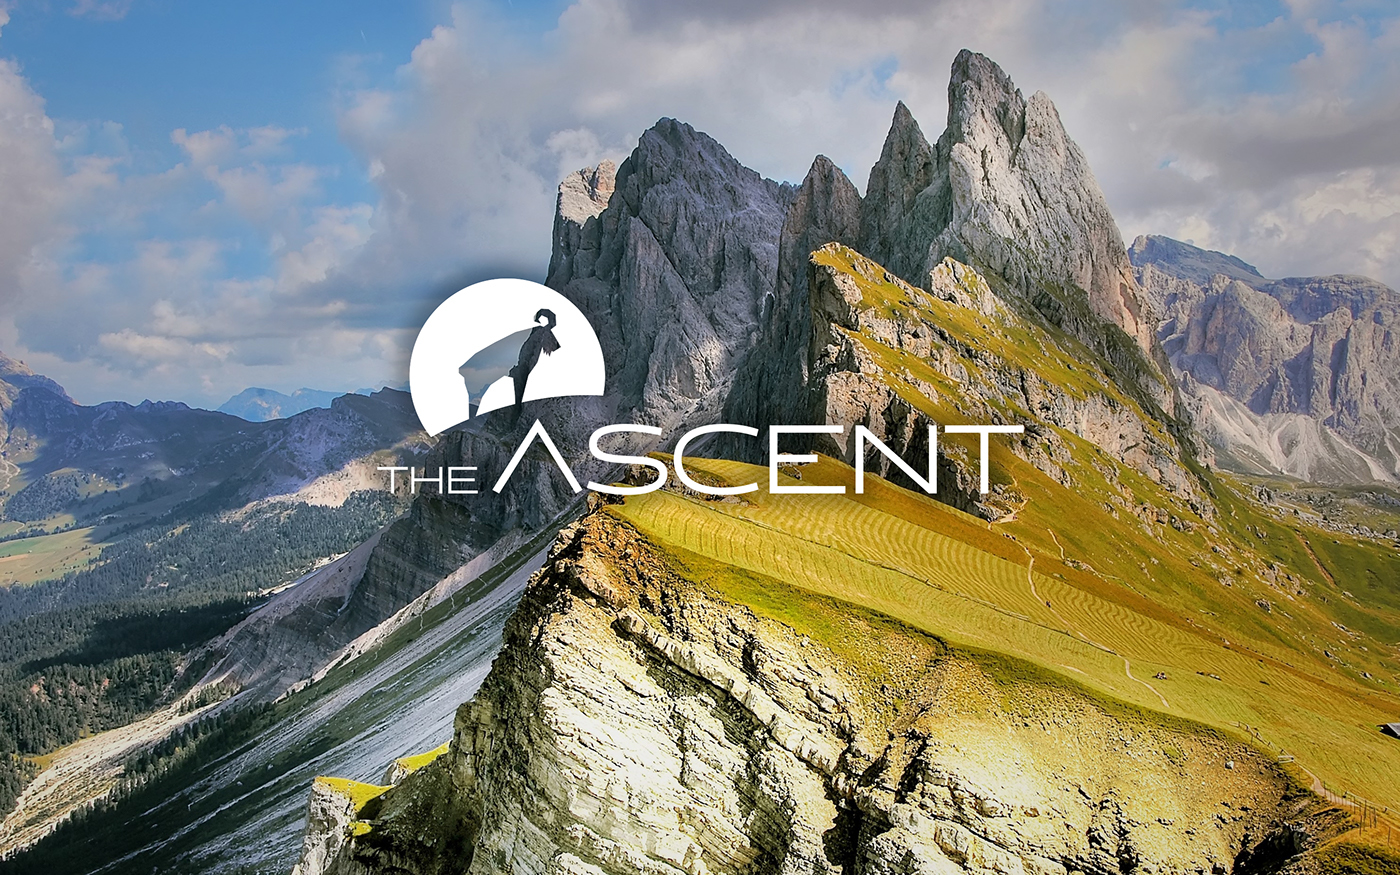 The Ascent website